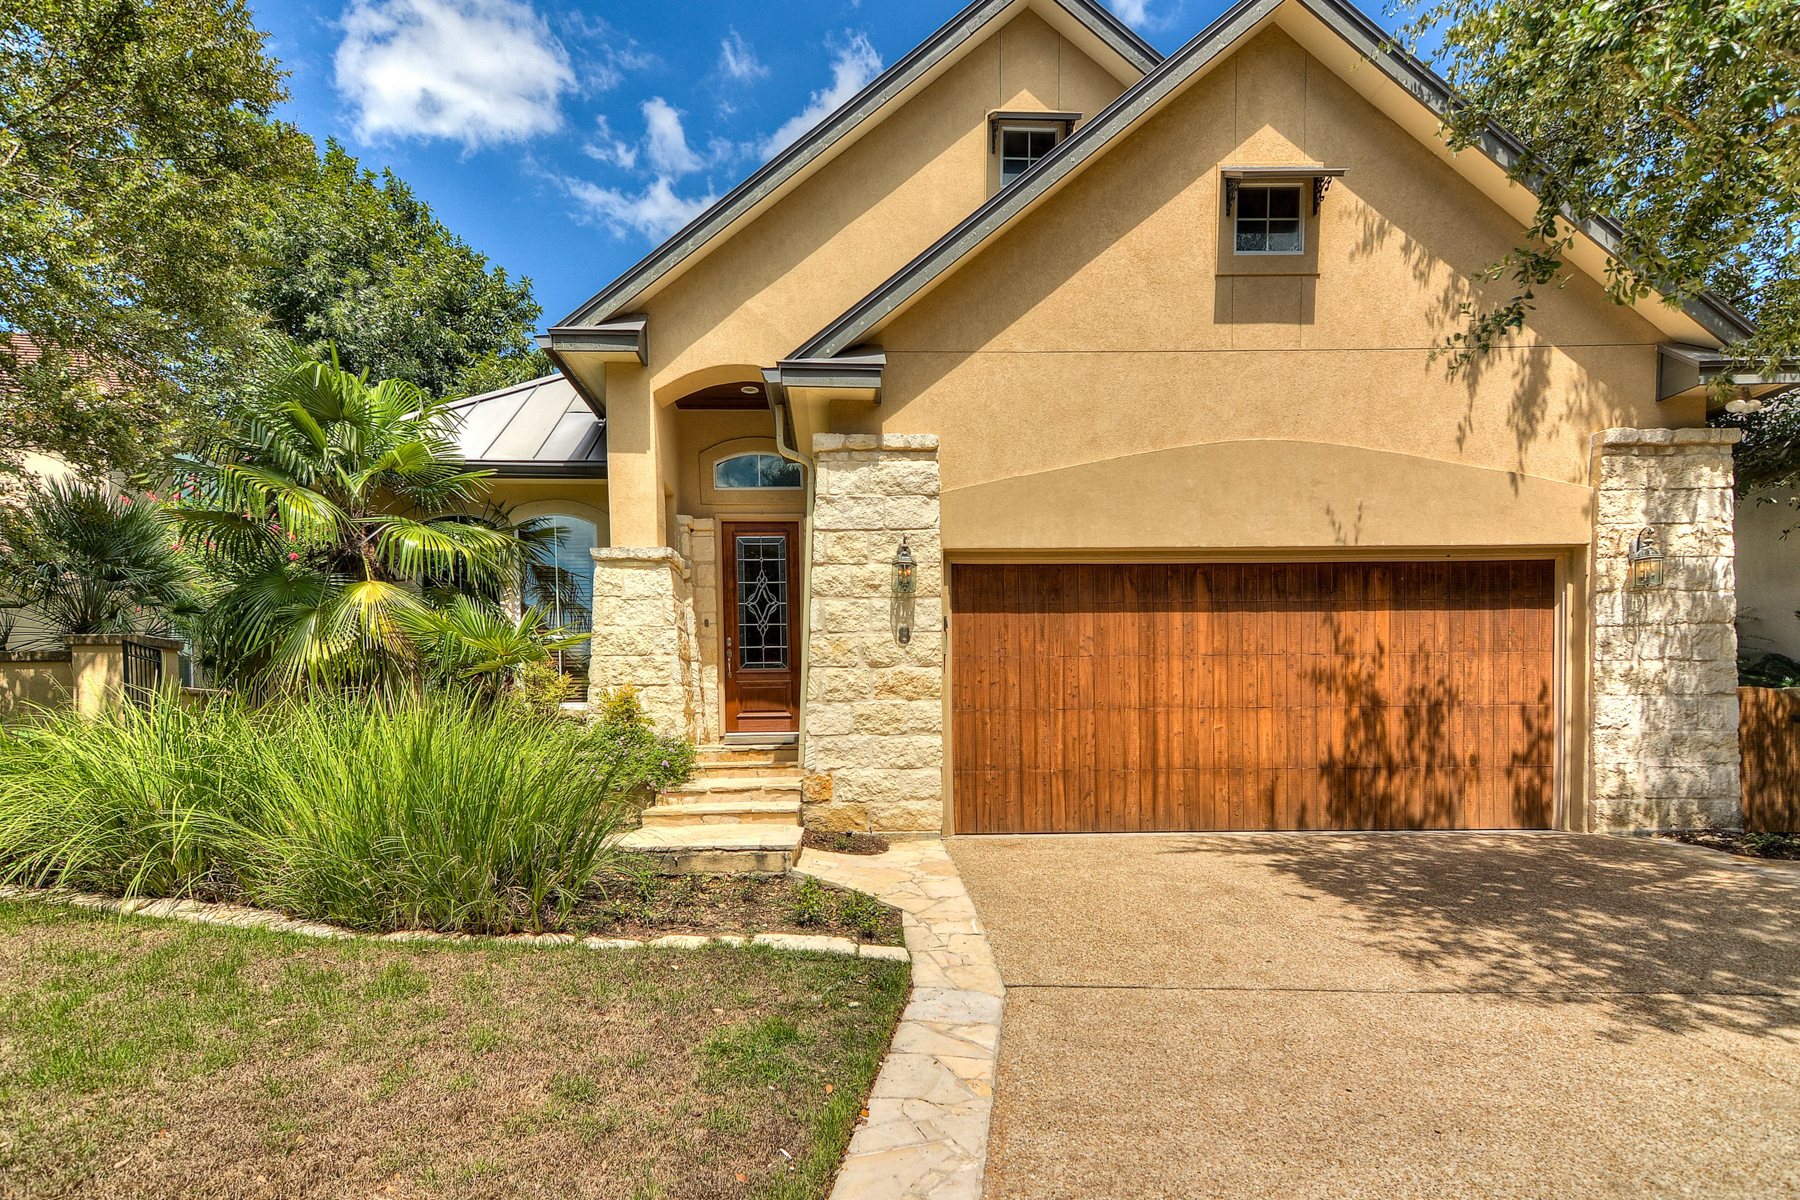 Single Family Home for Sale at Gorgeous Gem in The Dominion 8 Worthsham Dr San Antonio, Texas 78257 United States